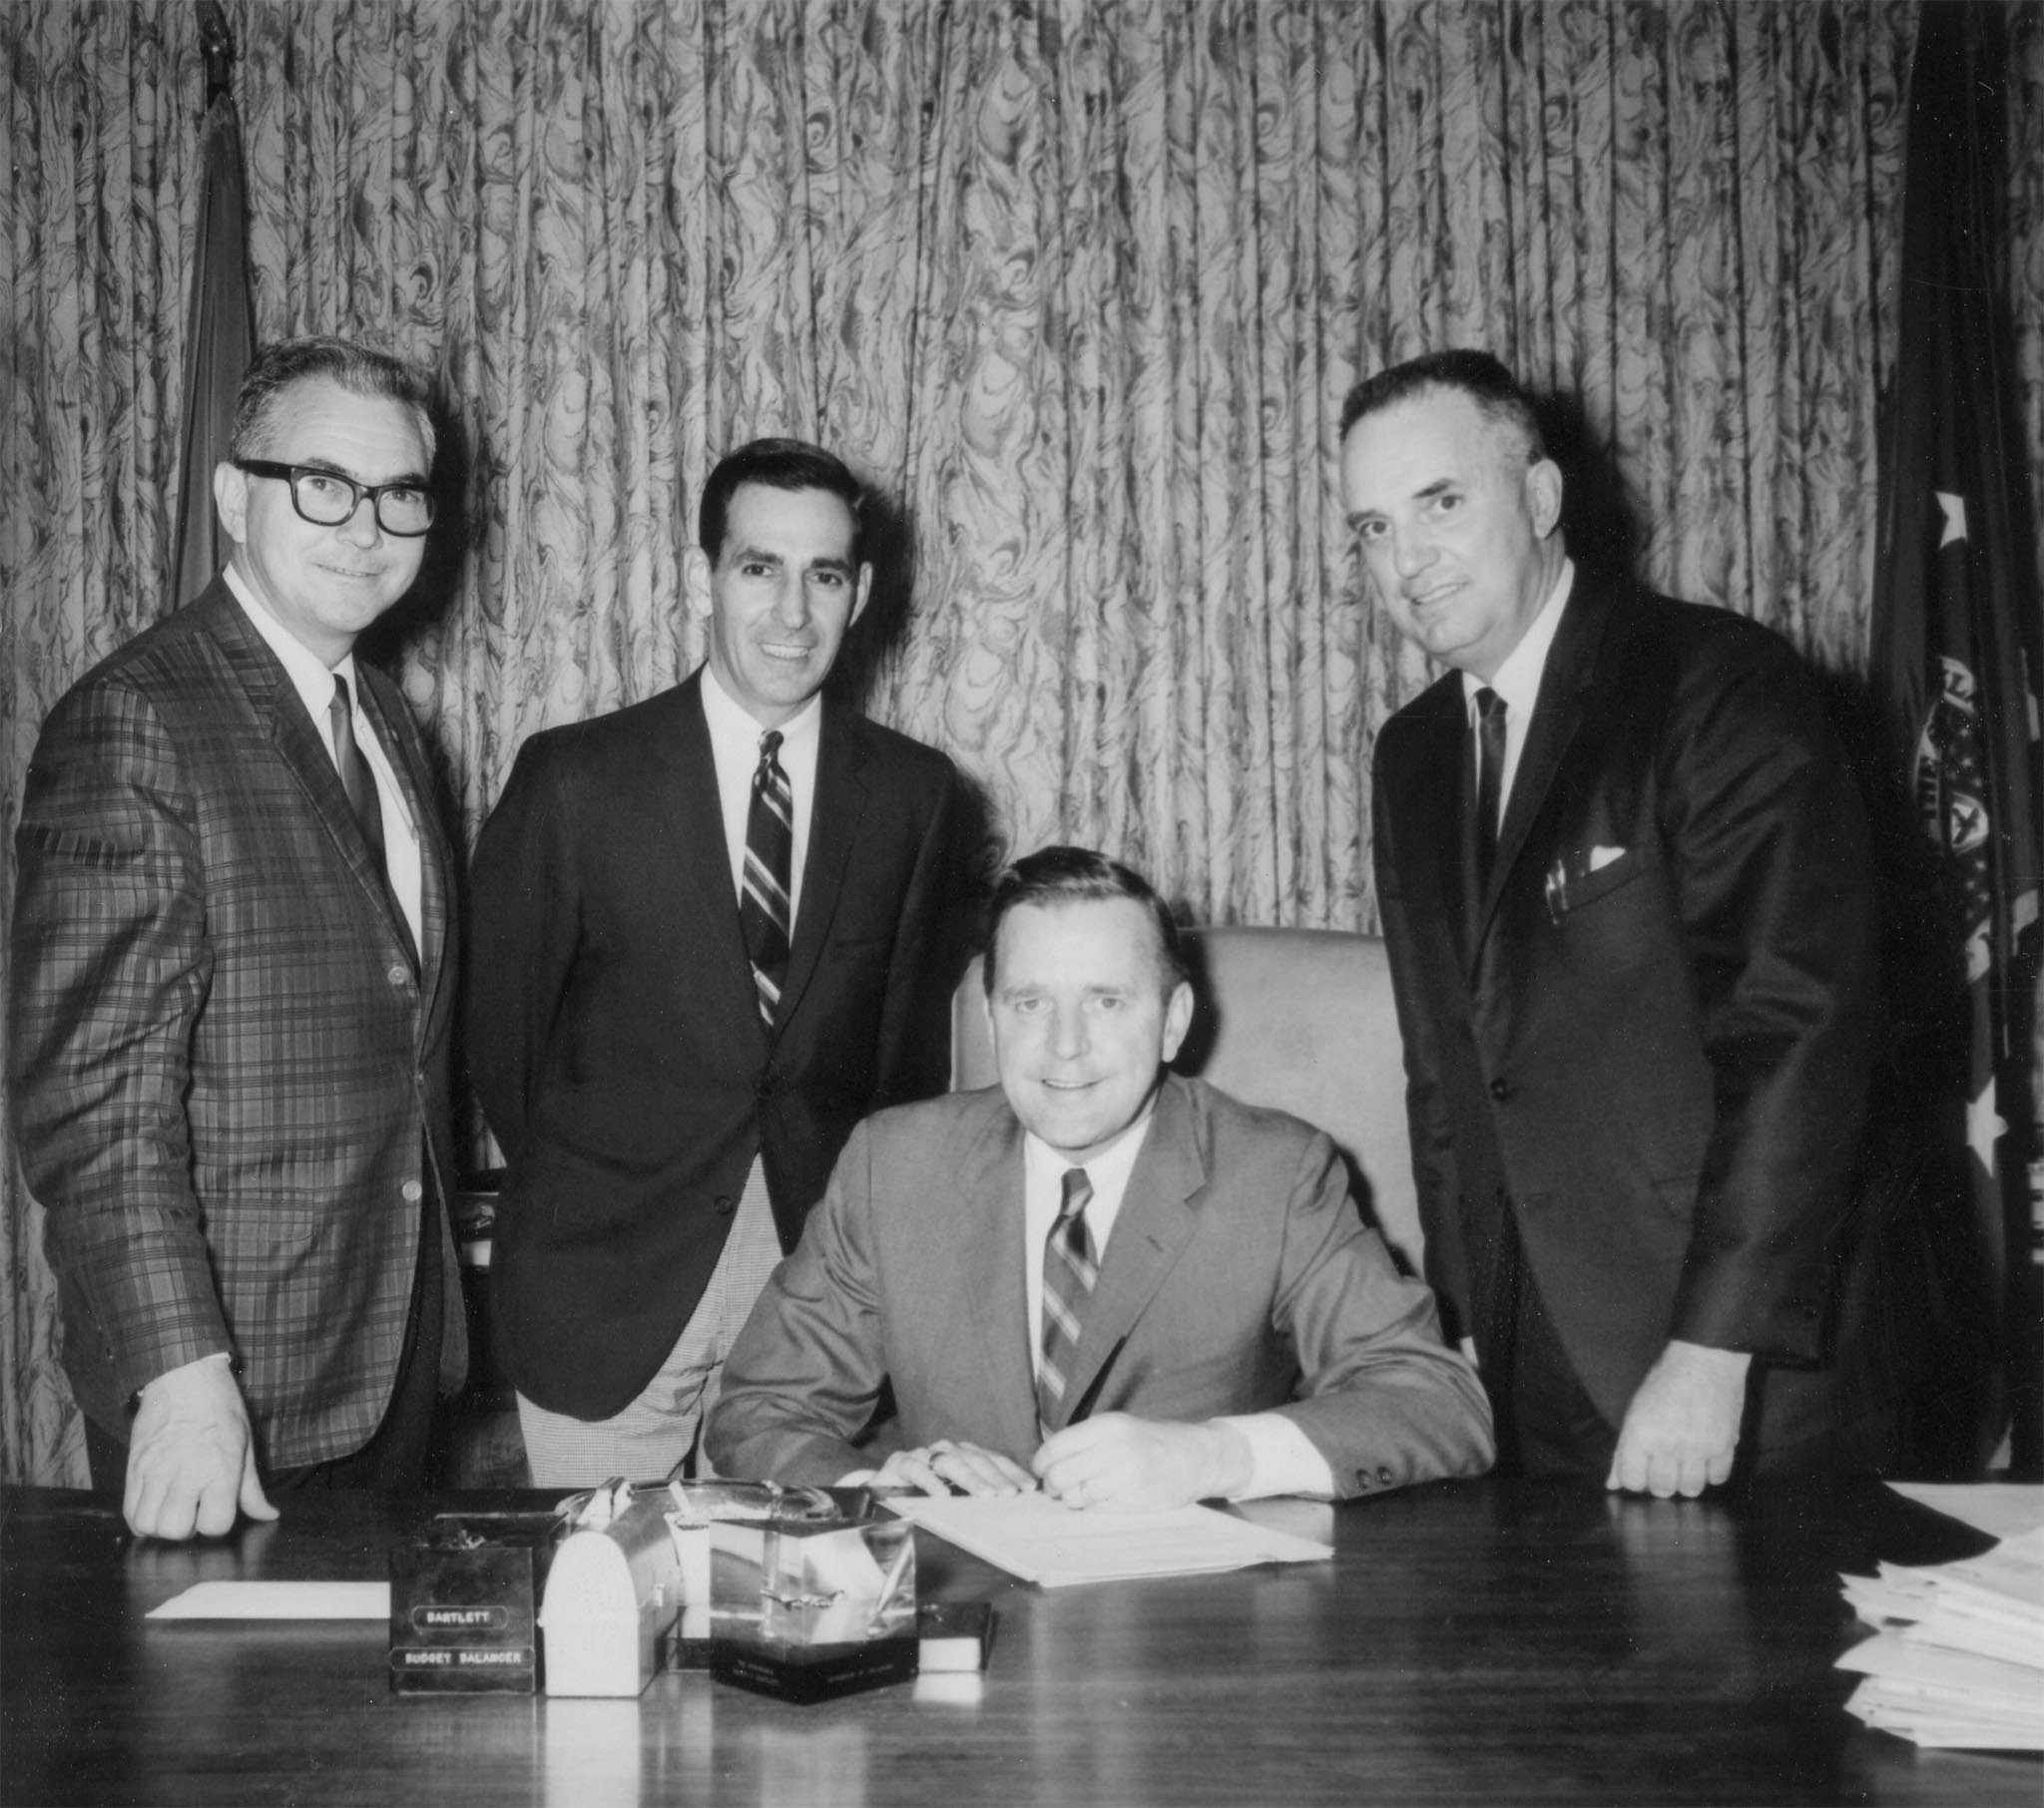 In 1968, Oklahoma Farm Bureau drafted a bill referred to as the Right-to-Market bill, which increased penalties and specifically prohibited interference by force, coercion or intimidation of persons seeking to market farm products. The bill was aimed at giving additional protection against violence, such as that which occurred in the Midwest in prior years during withholding actions of the National Farmers Organization. This photo was taken as Gov. Dewey Bartlett signed the Farm-Bureau-sponsored bill into law as OKFB Executive Secretary Kenneth McFall, Sen. Anthony Massad of Frederick and Rep. Harold Hunter of Waukomis looked on. Massad was the Senate author for the bill, and Hunter was one of the chief supporters of the bill in the House.